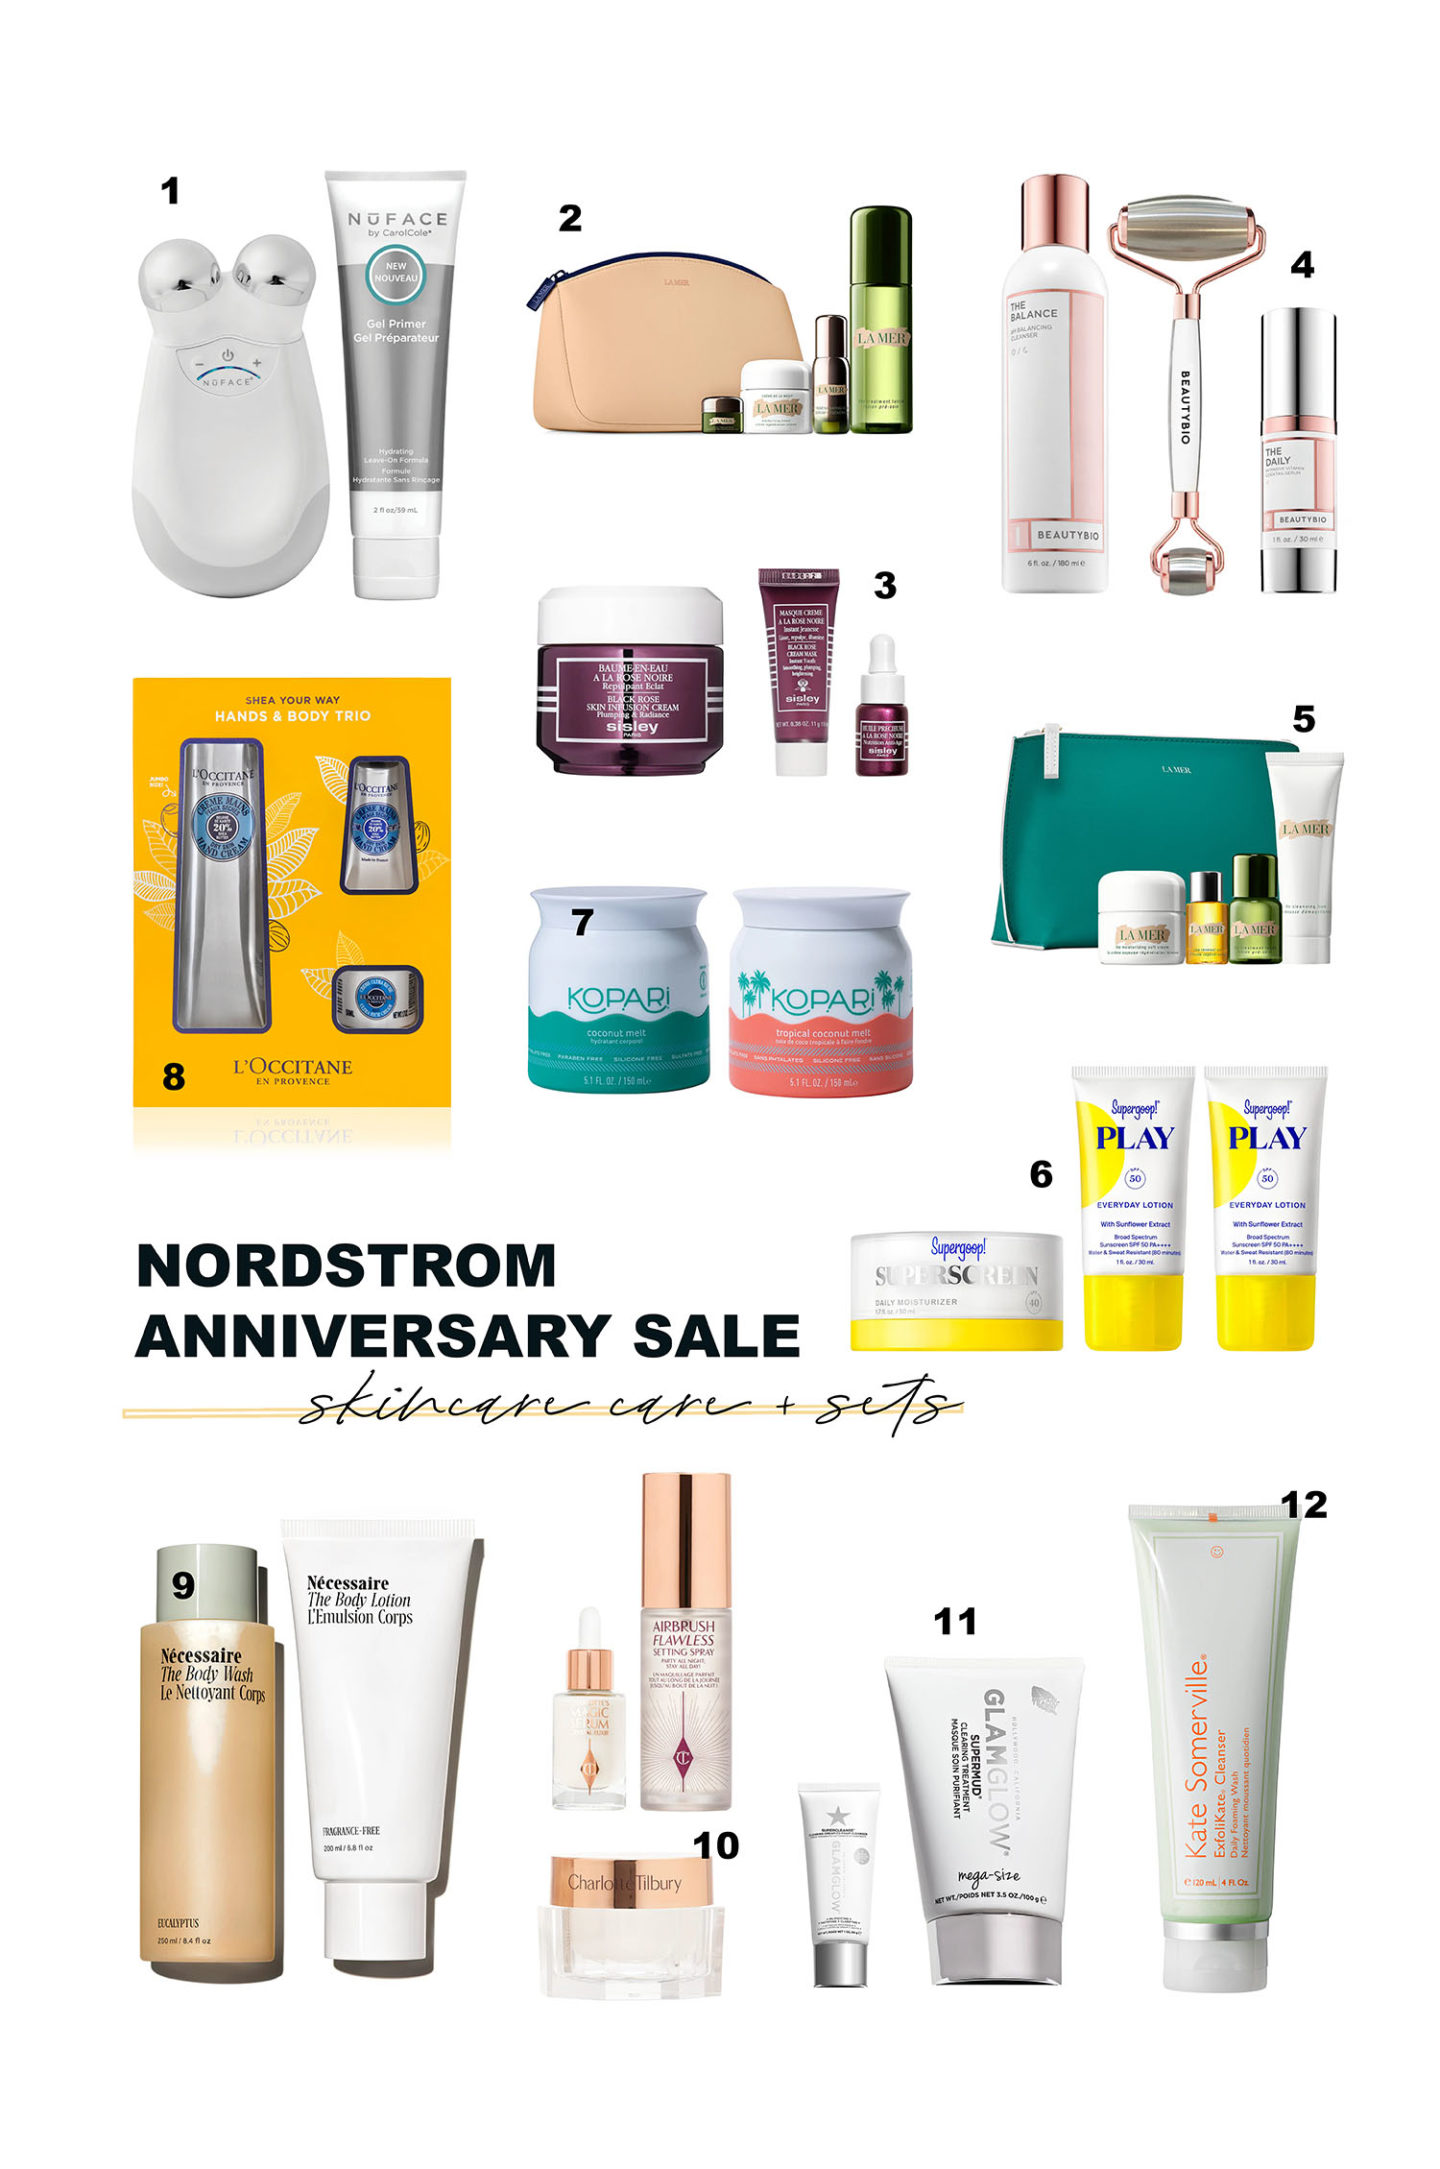 Nordstrom Anniversary Sale 2021 Beauty Exclusives Skincare